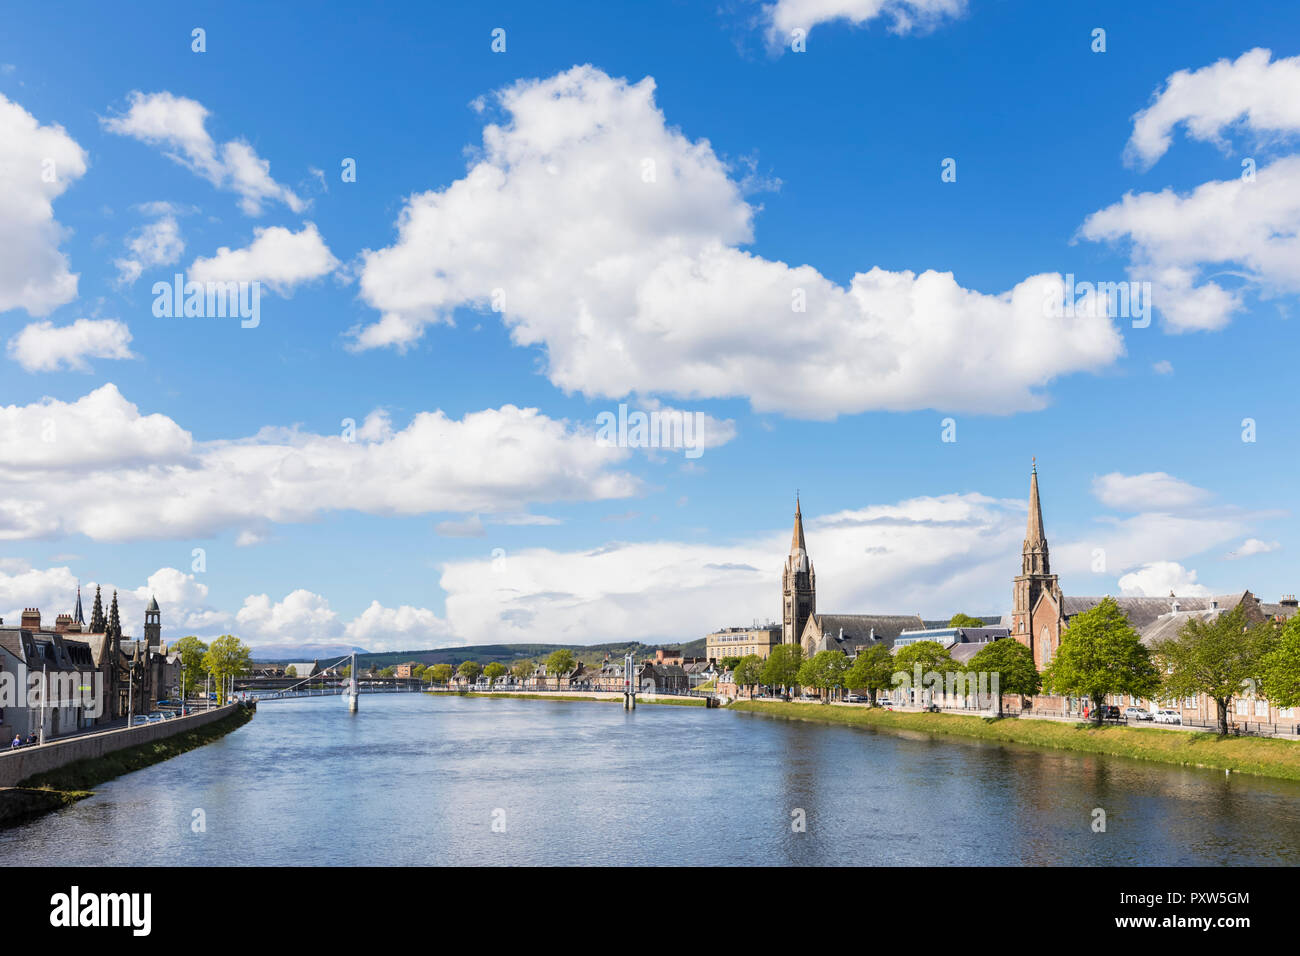 UK, Scotland, Inverness, cityscape with Greig St Bridge, Huntly Street, River Ness, Old High Church, Free Church of Scotland and Bank Street - Stock Image